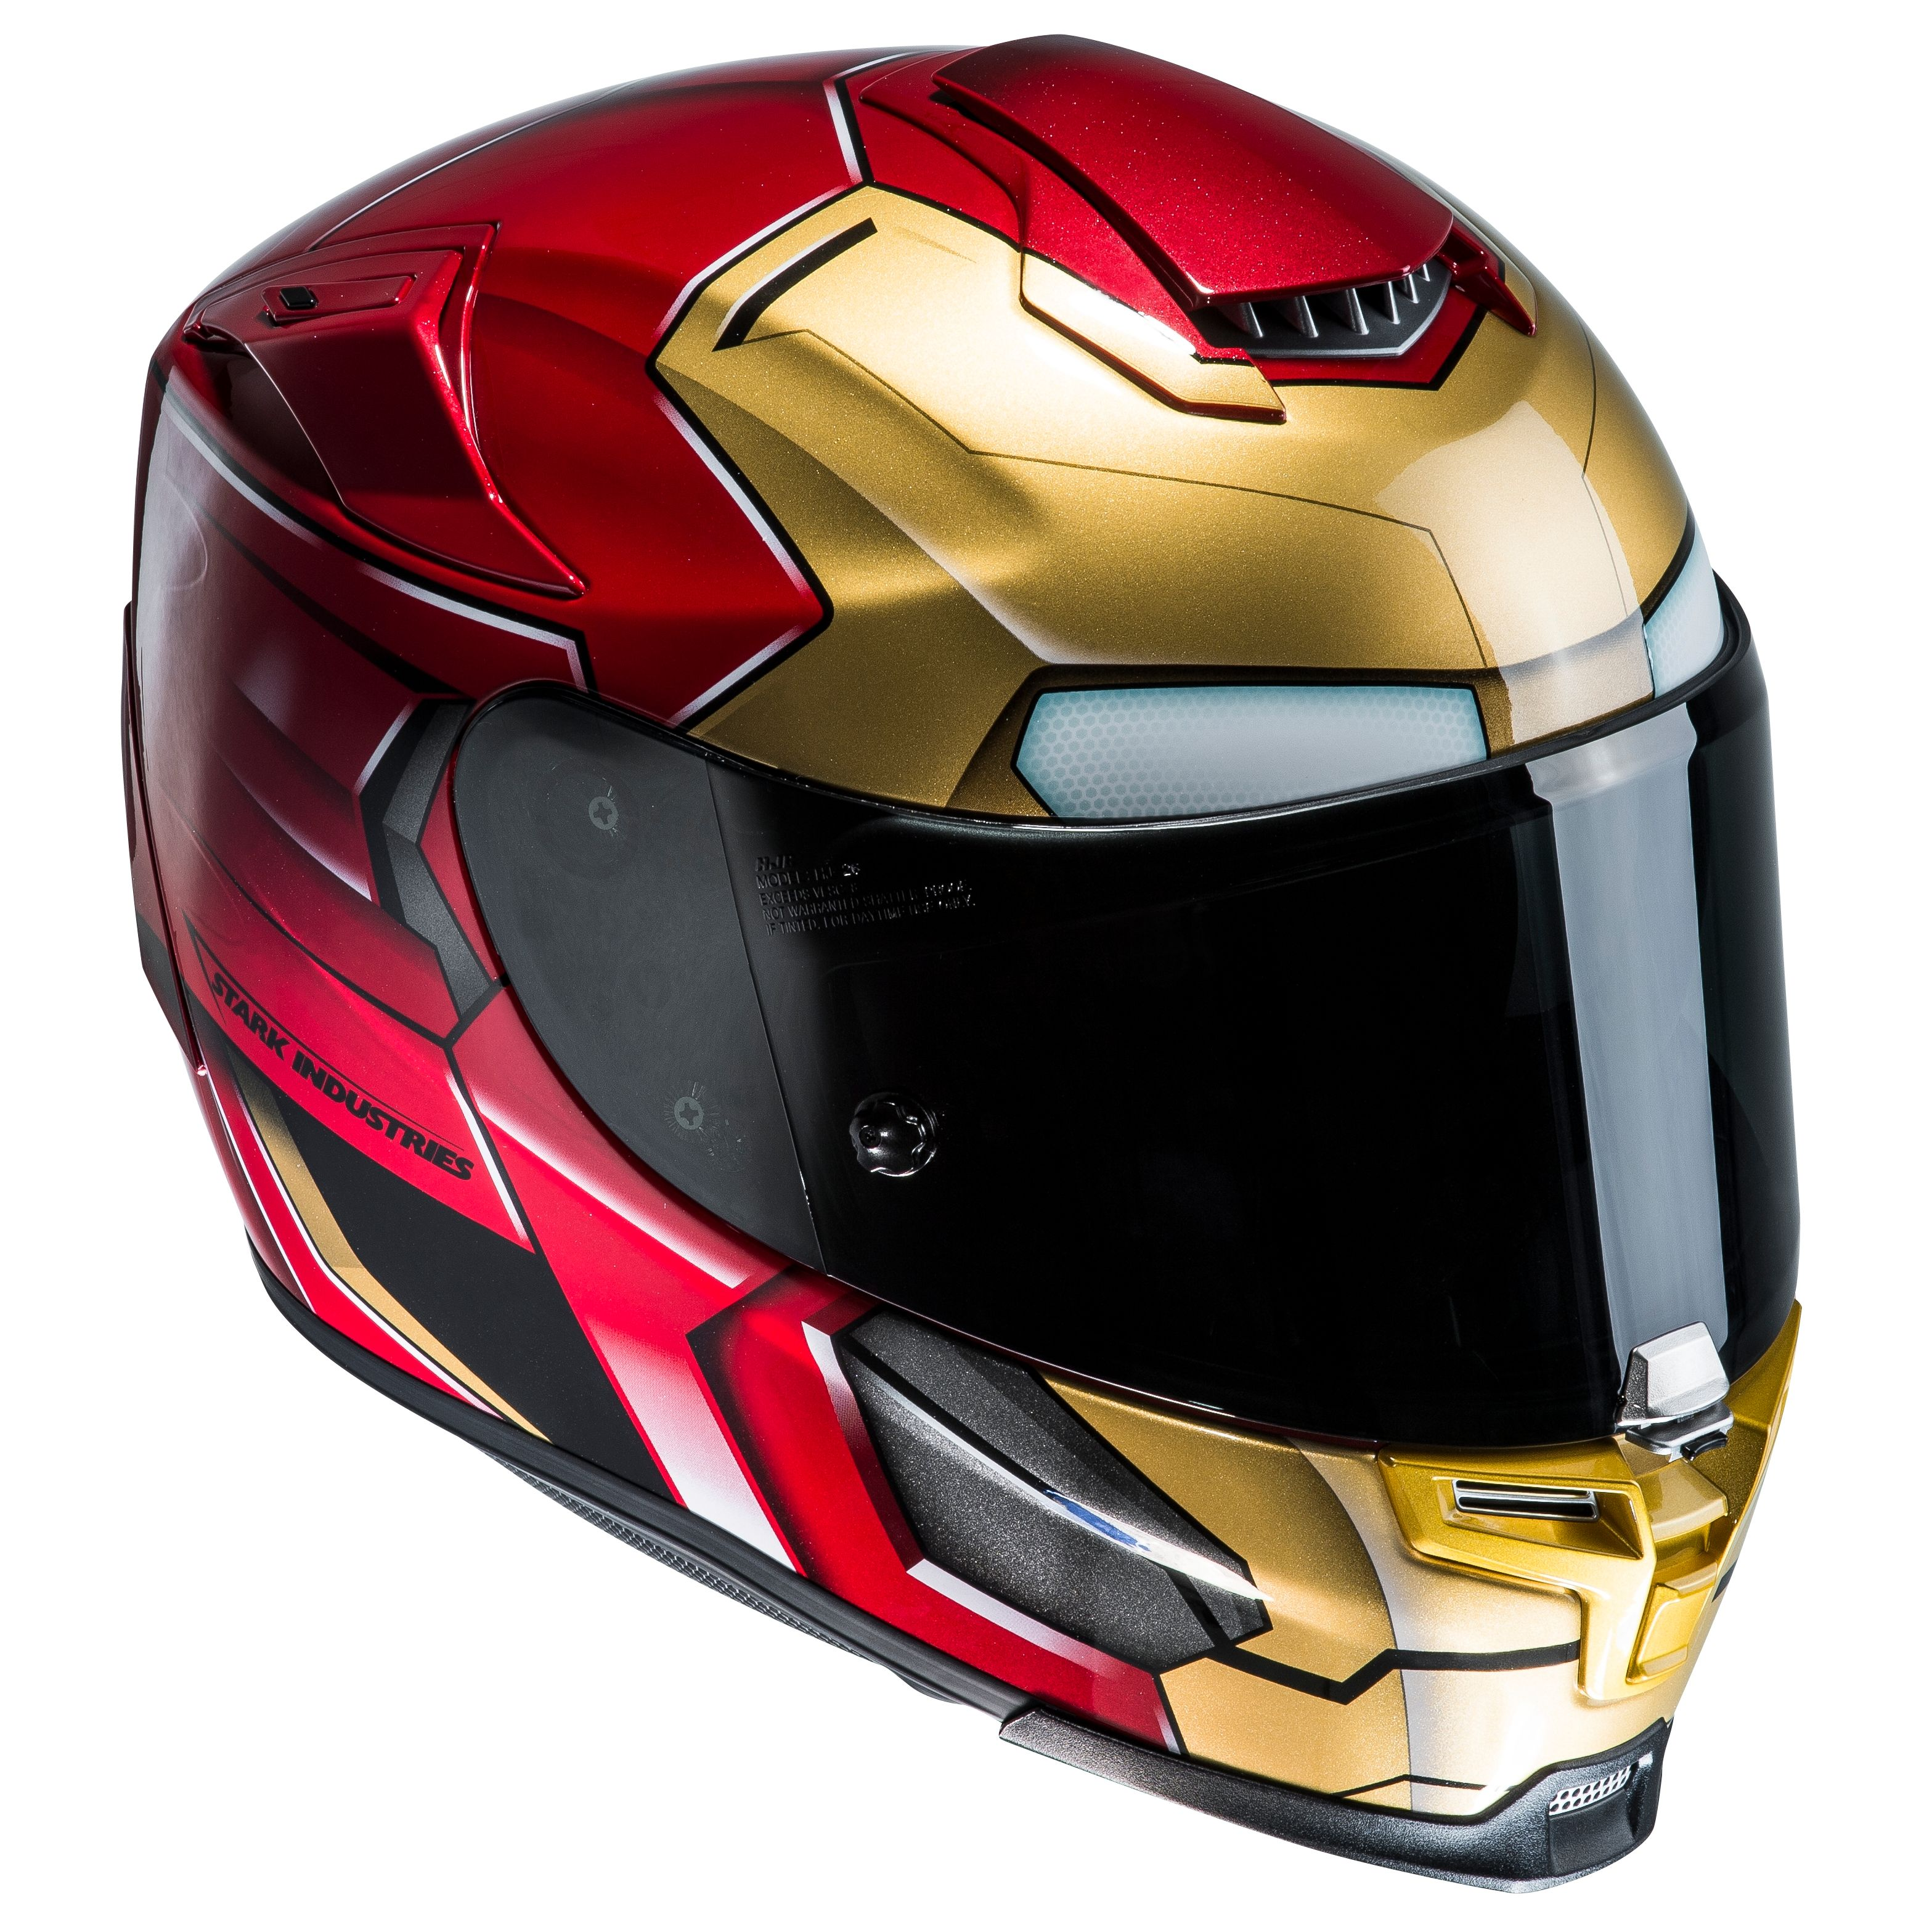 casque hjc rpha 70 iron man homecoming marvel equipement du pilote access. Black Bedroom Furniture Sets. Home Design Ideas